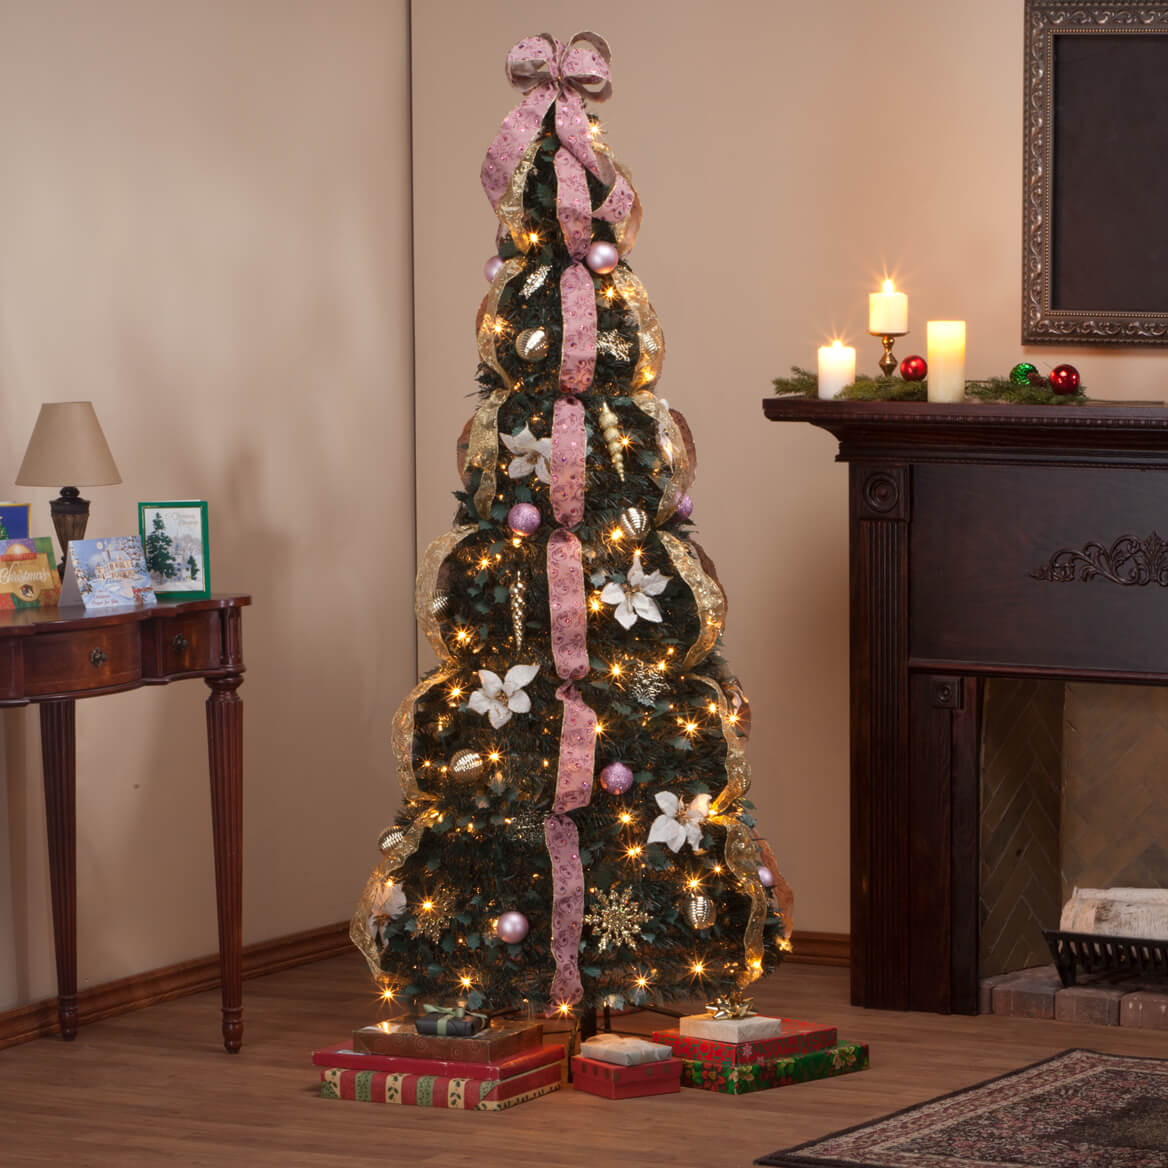 6' Victorian Style Pull-Up Tree by Holiday Peak™     XL-356213